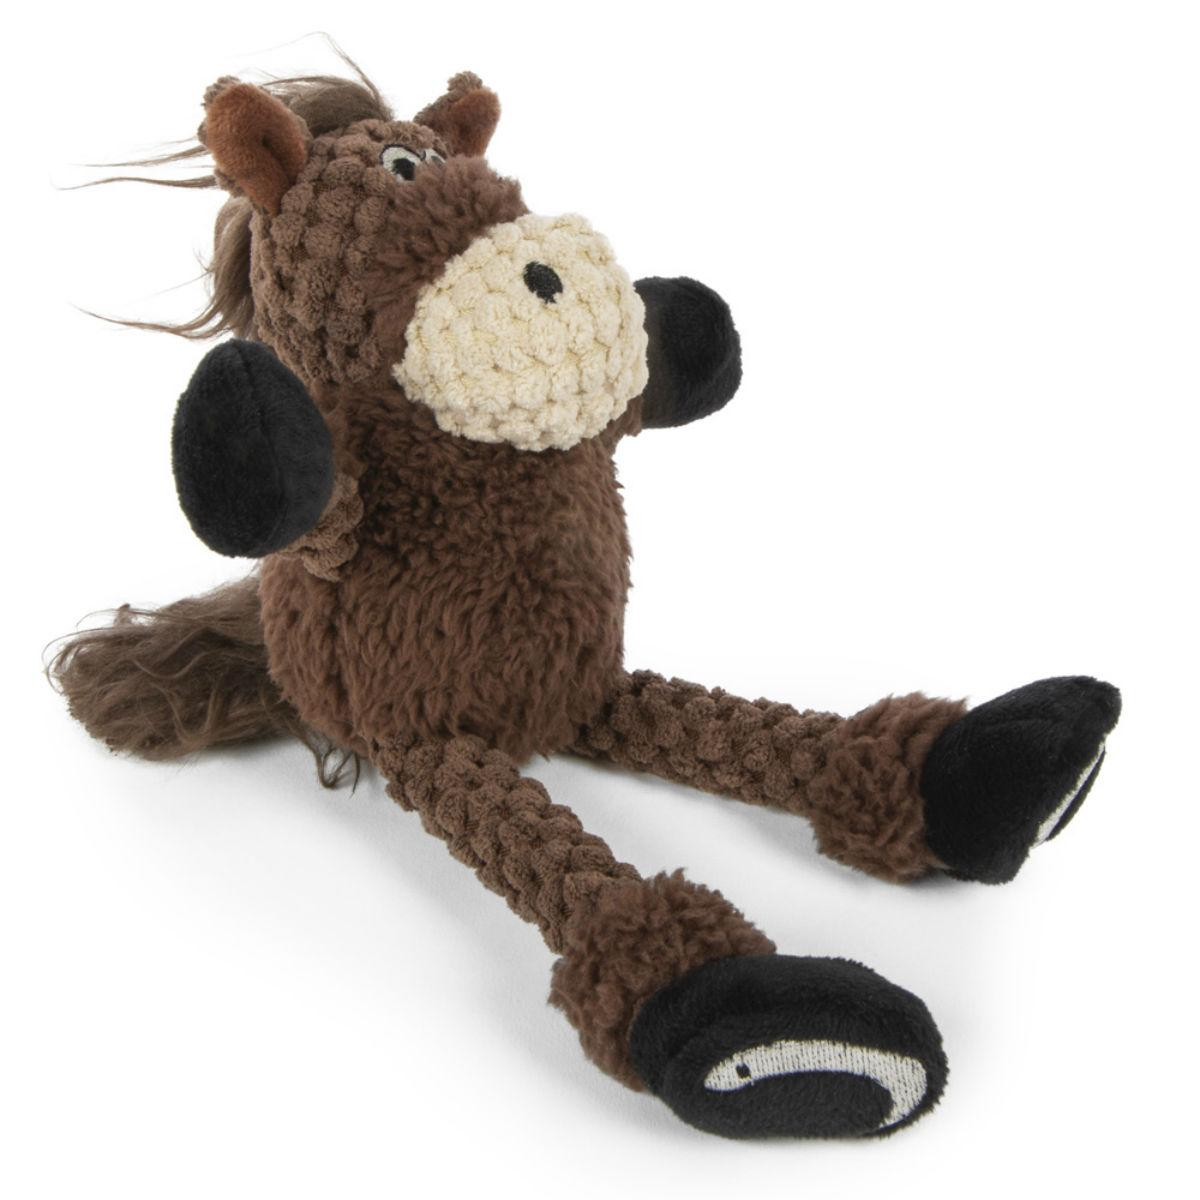 goDog Just for Me Checkers Skinny Dog Toy - Horse